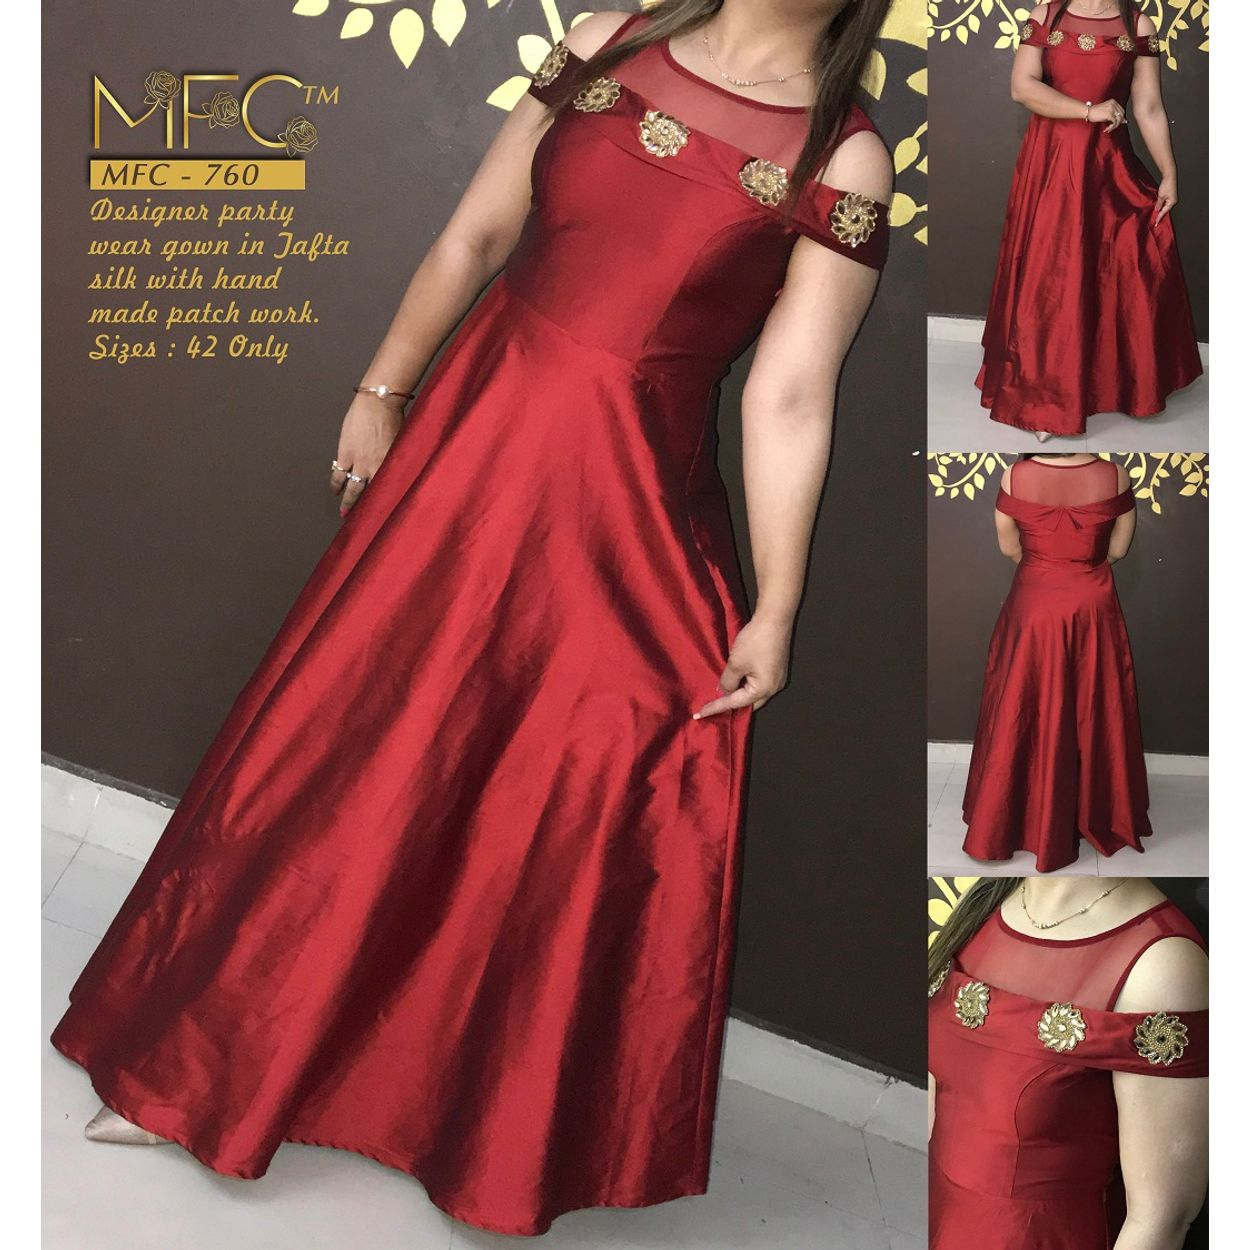 04b4c4867d6 MFC-760 Designer Party wear gown in jafta silk with hand made patch work